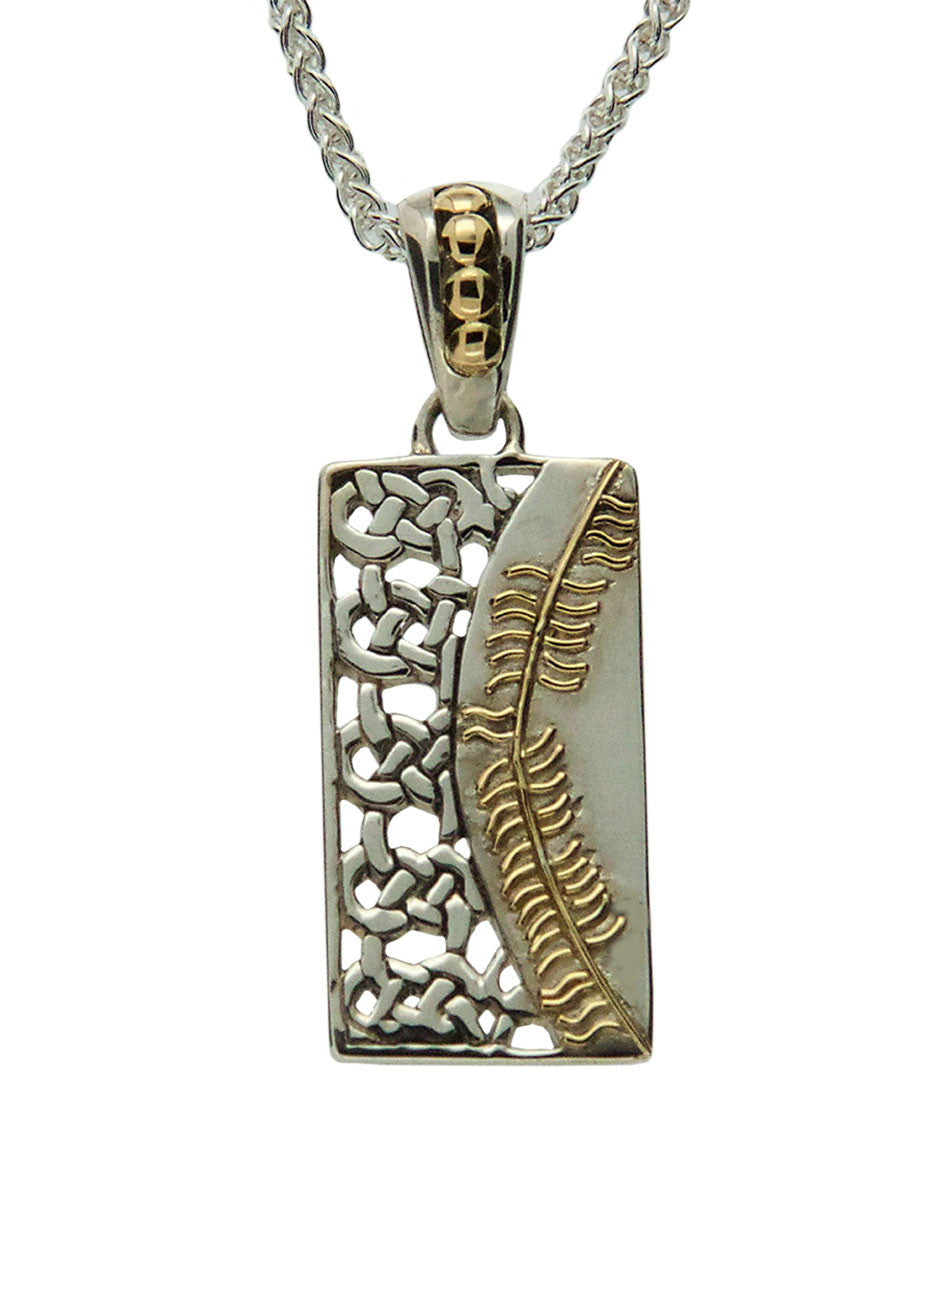 Secret Ogham Pendant - Friendship (Cairdeas)